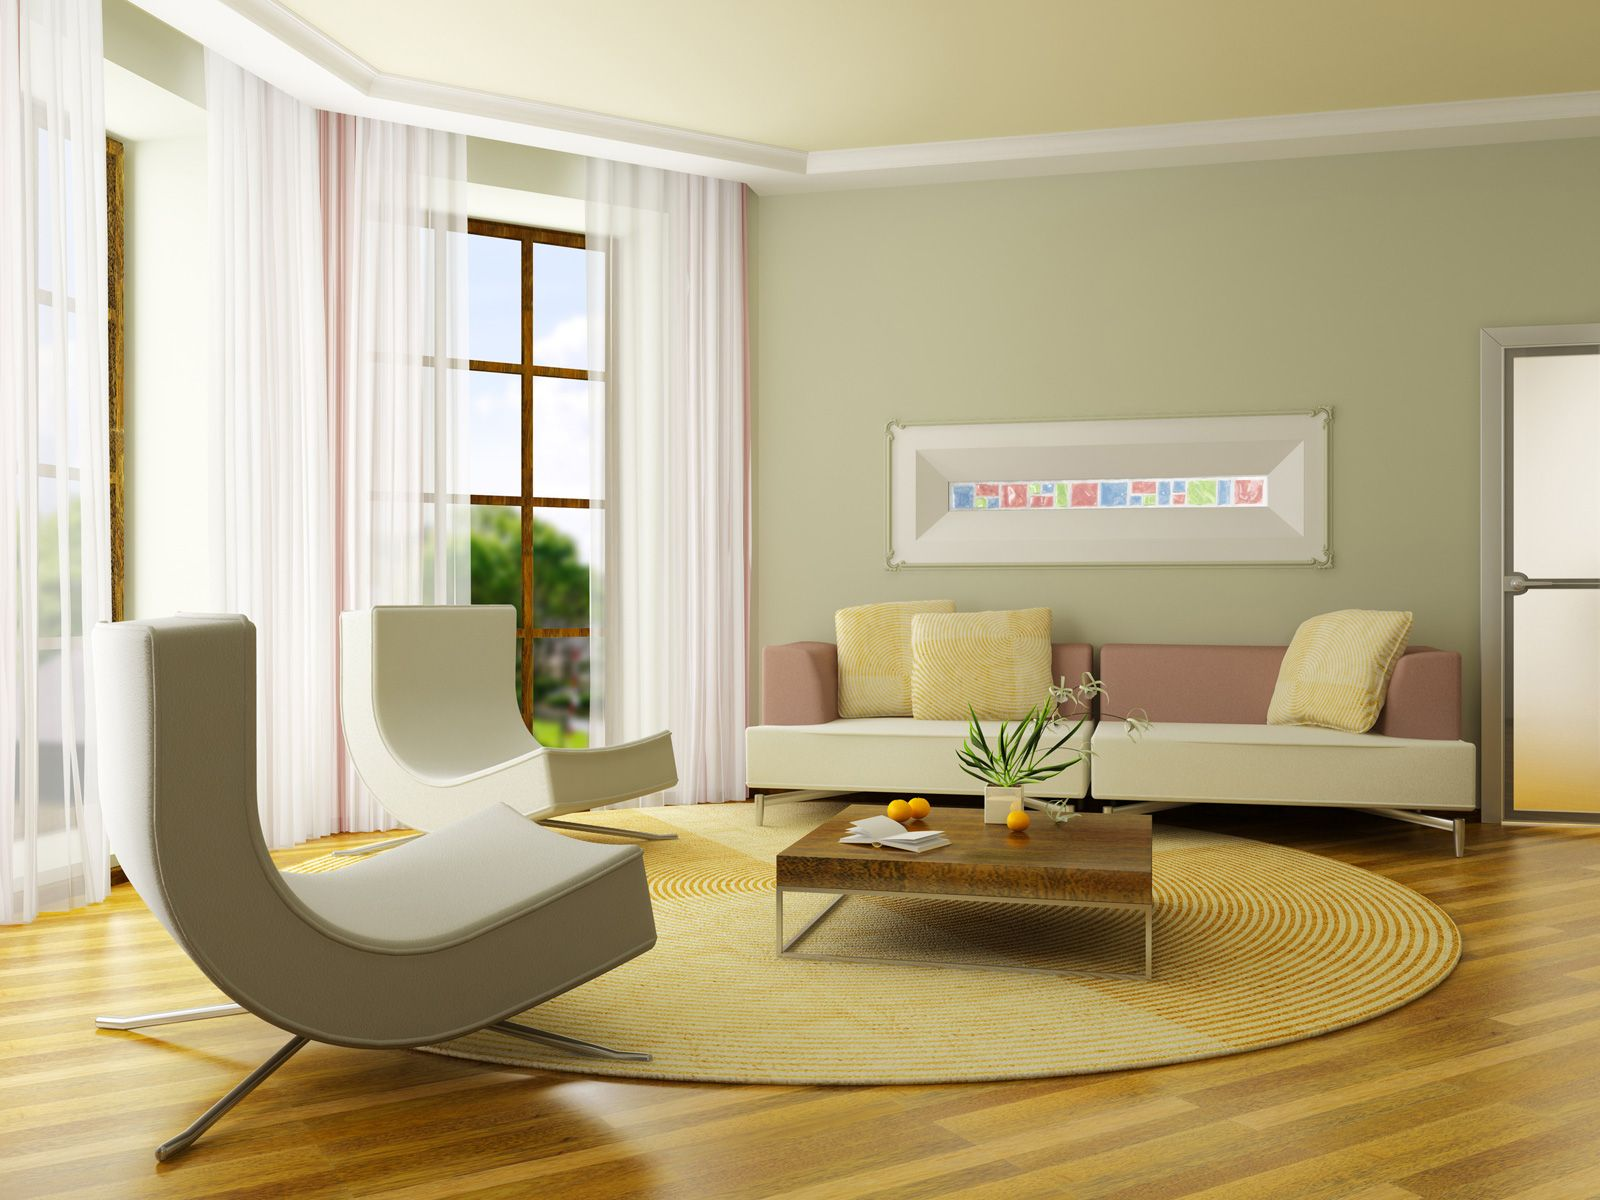 Modern minimalist interior designs for living rooms nice curtains for window living room design and